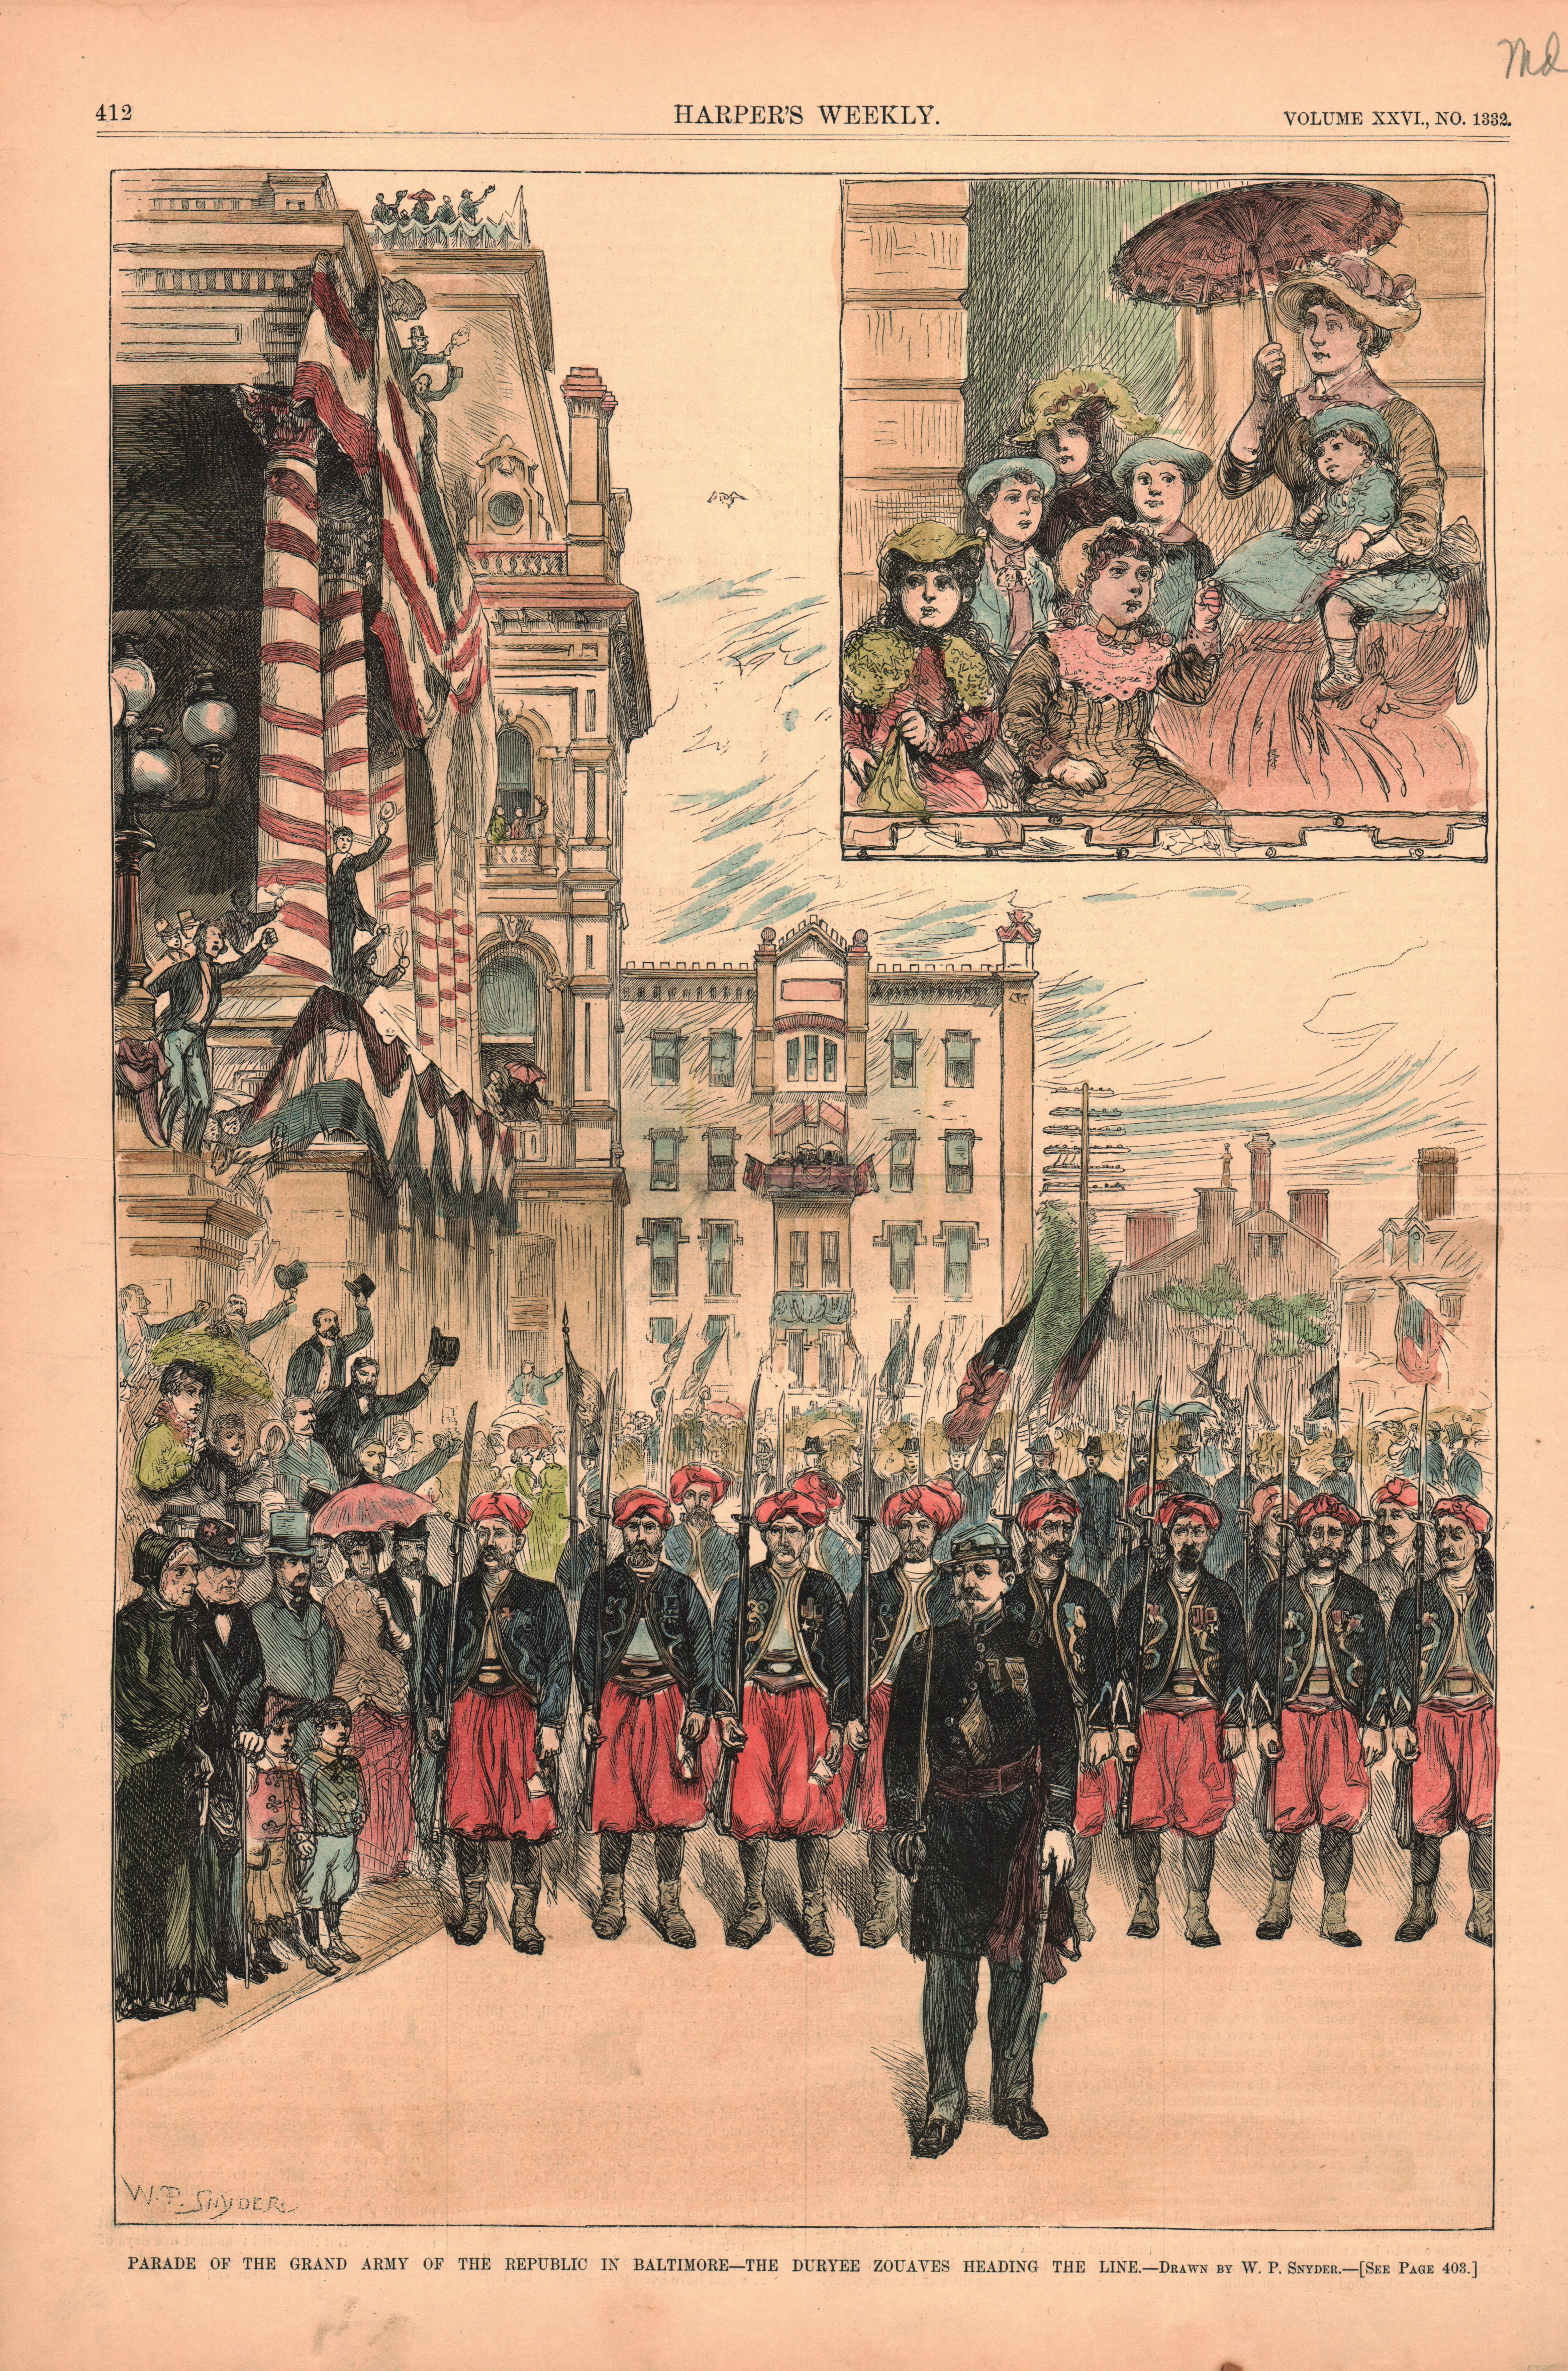 Parade of the Grand Army of the Republic in Baltimore